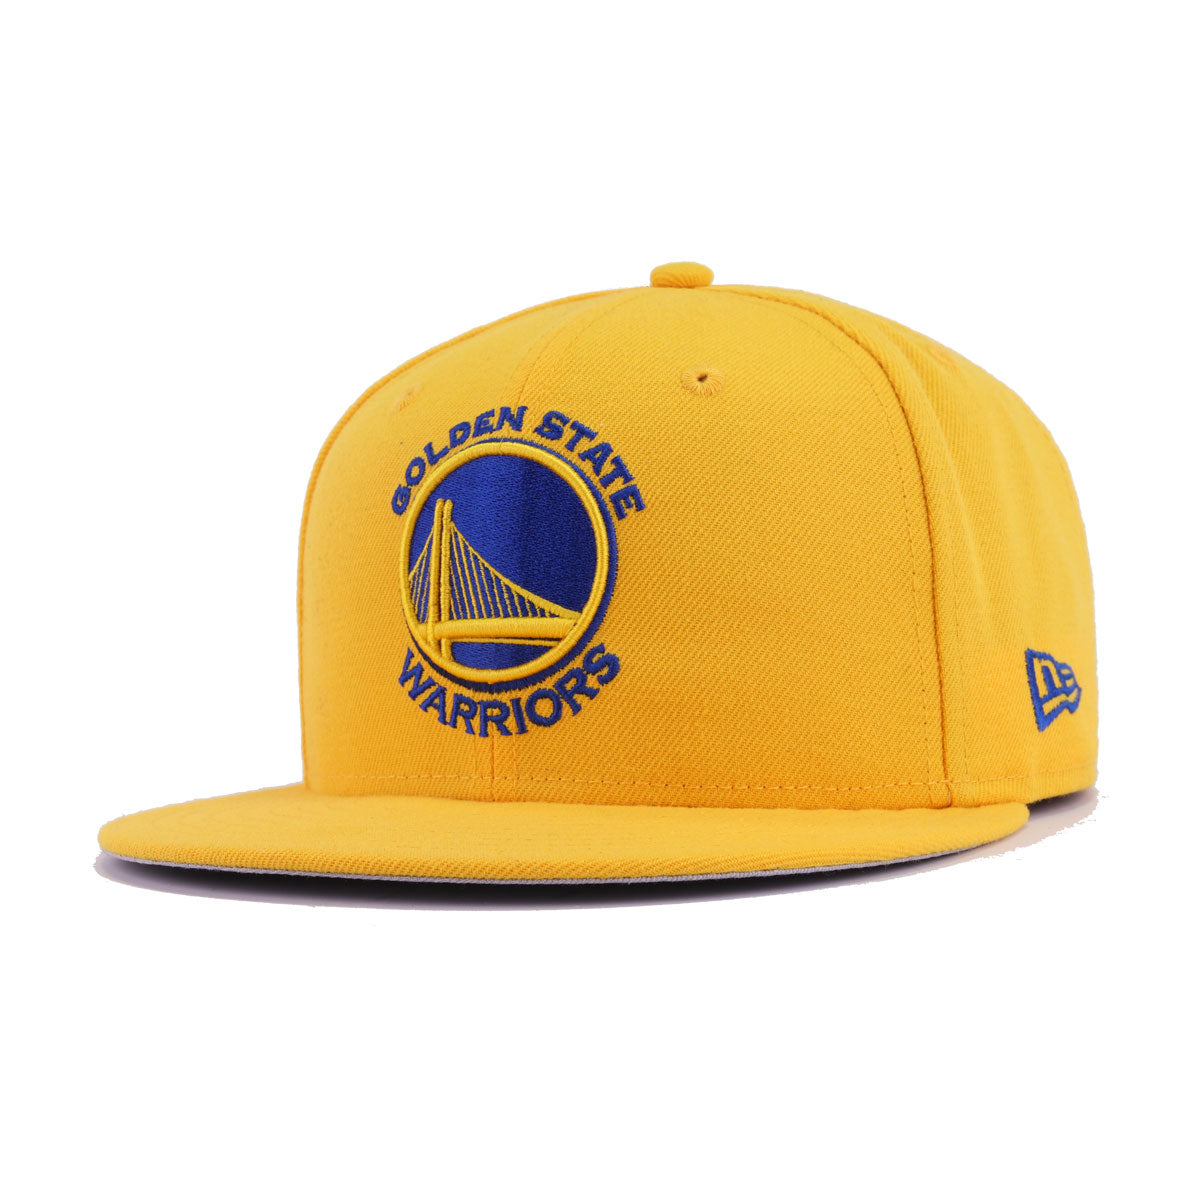 c599d8bf5af3b ireland golden state warriors as gold light royal blue 2015 nba finals  champion new era 9fifty